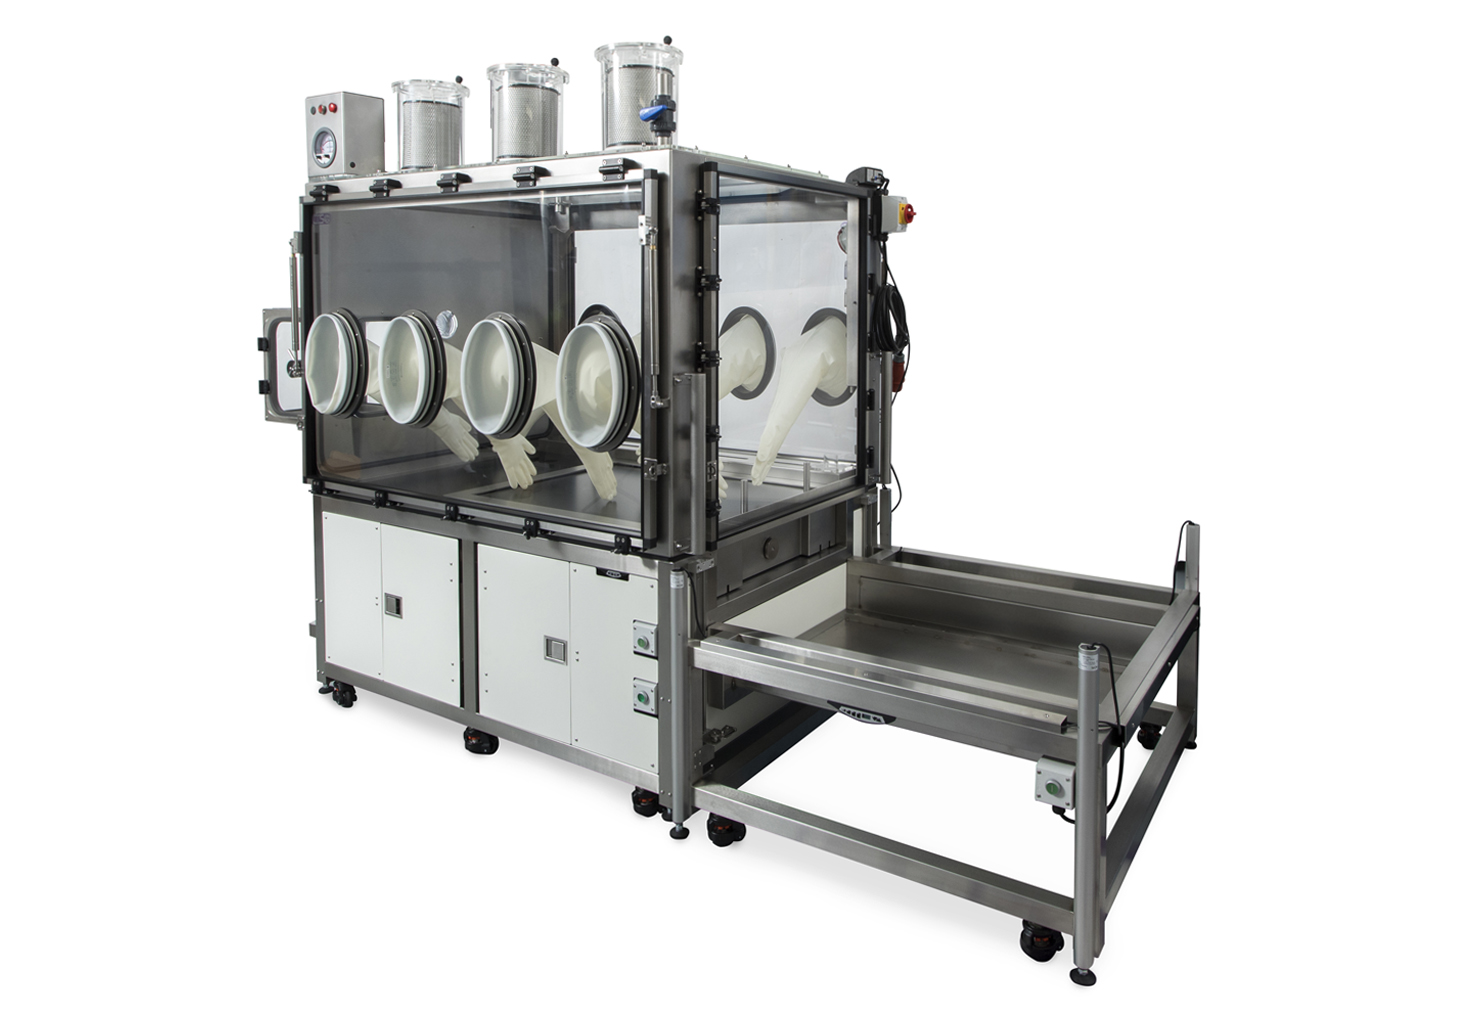 Laboratory HEPA Filtered Glovebox with docking system